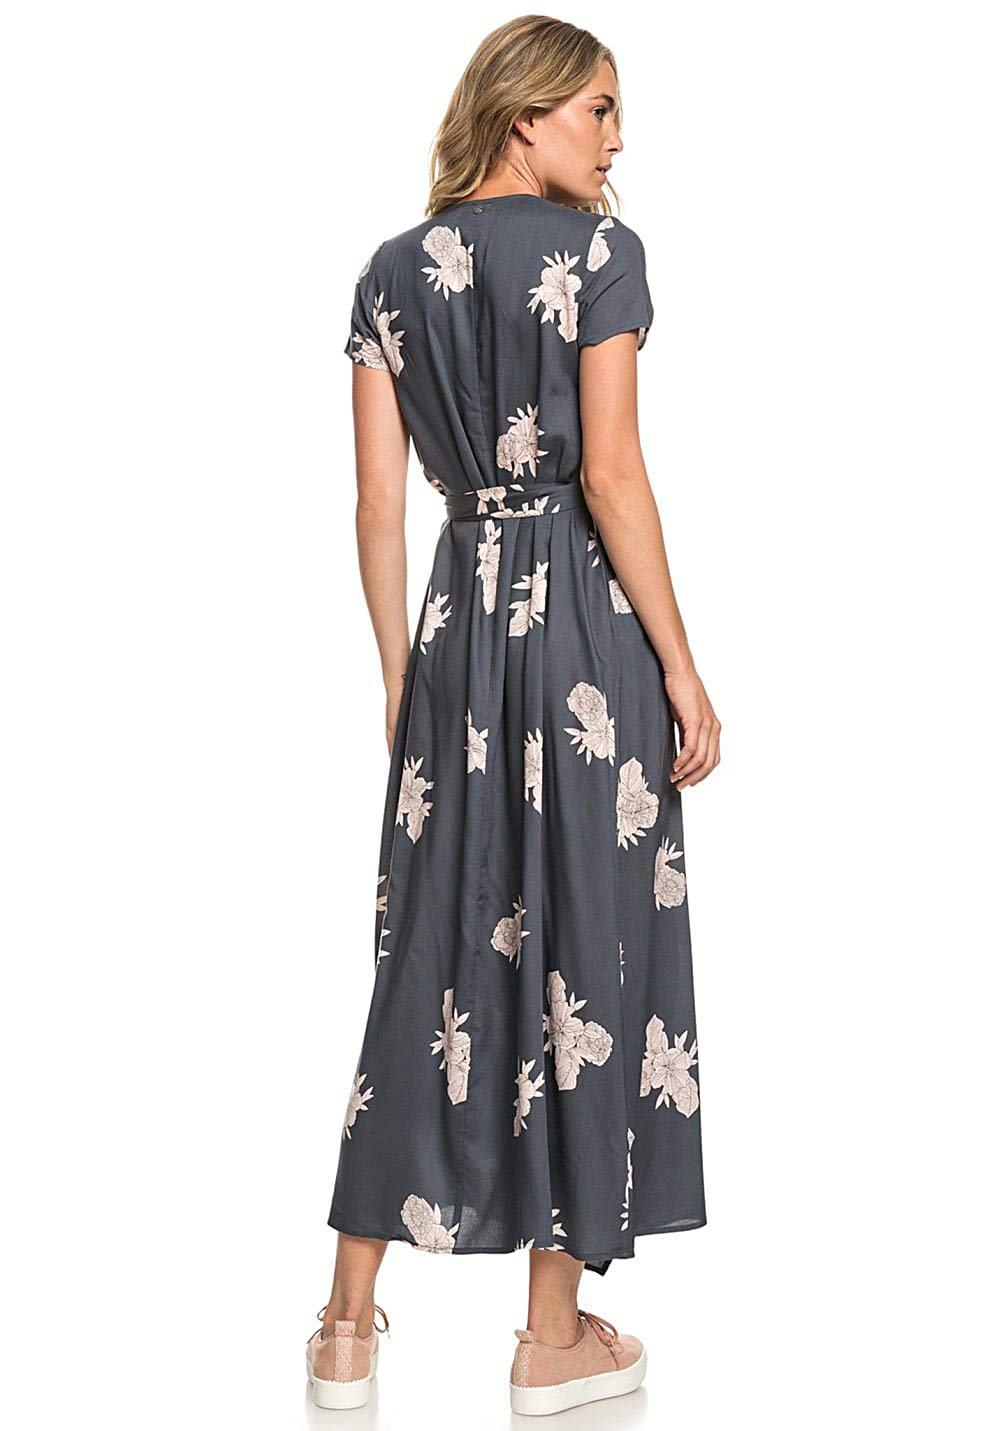 Roxy District Day – Woven Dress Mujer